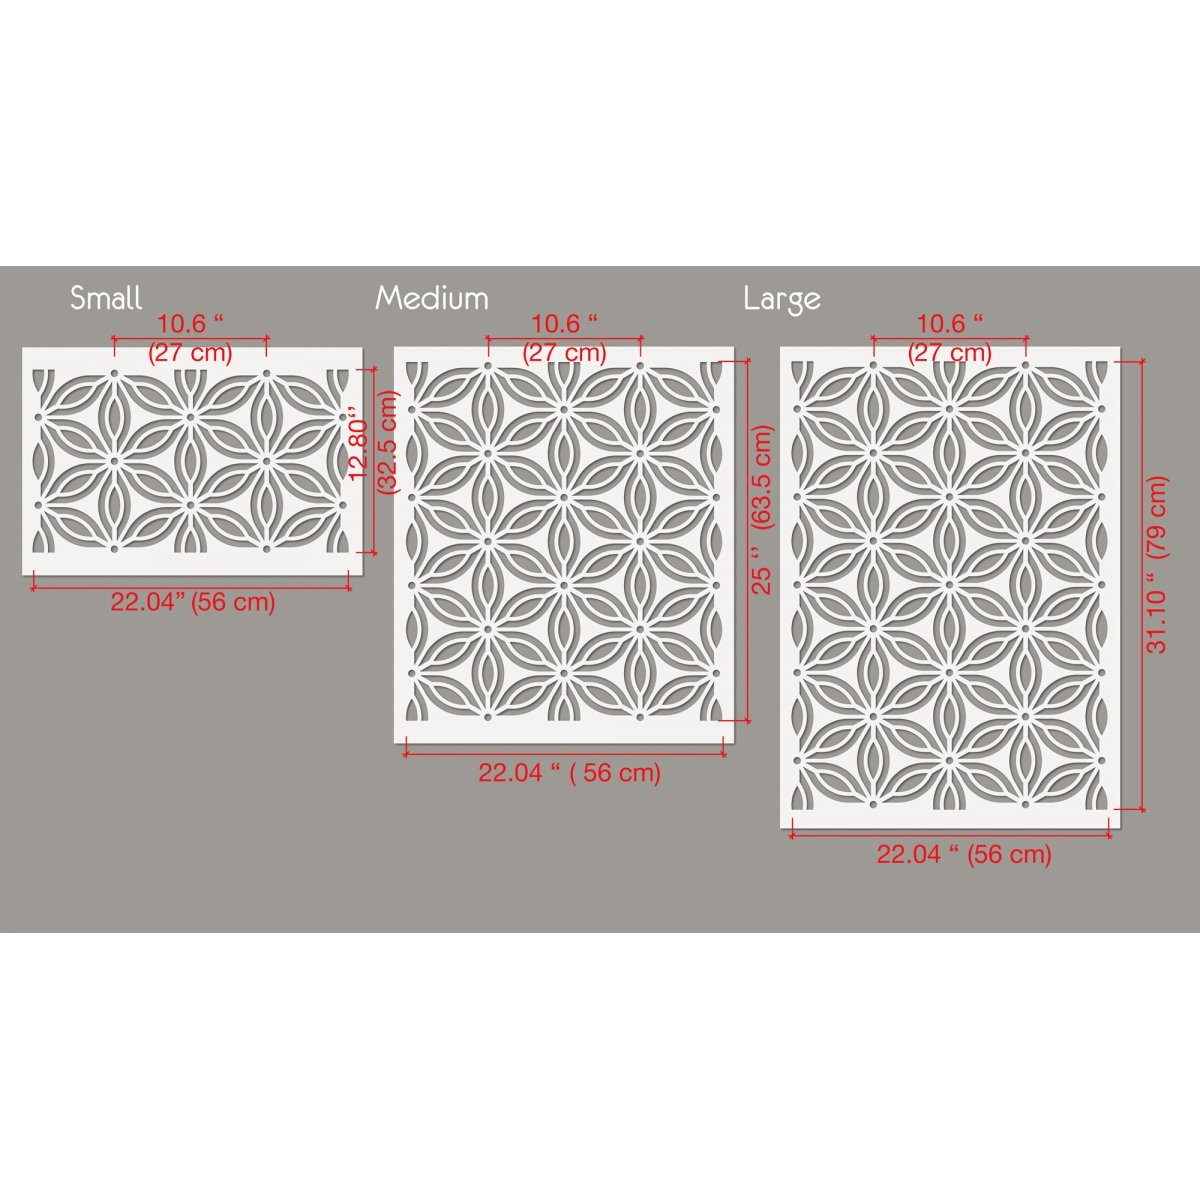 DANCE OF FLOWERS / Reusable Allover Large Wall Stencils for Painting